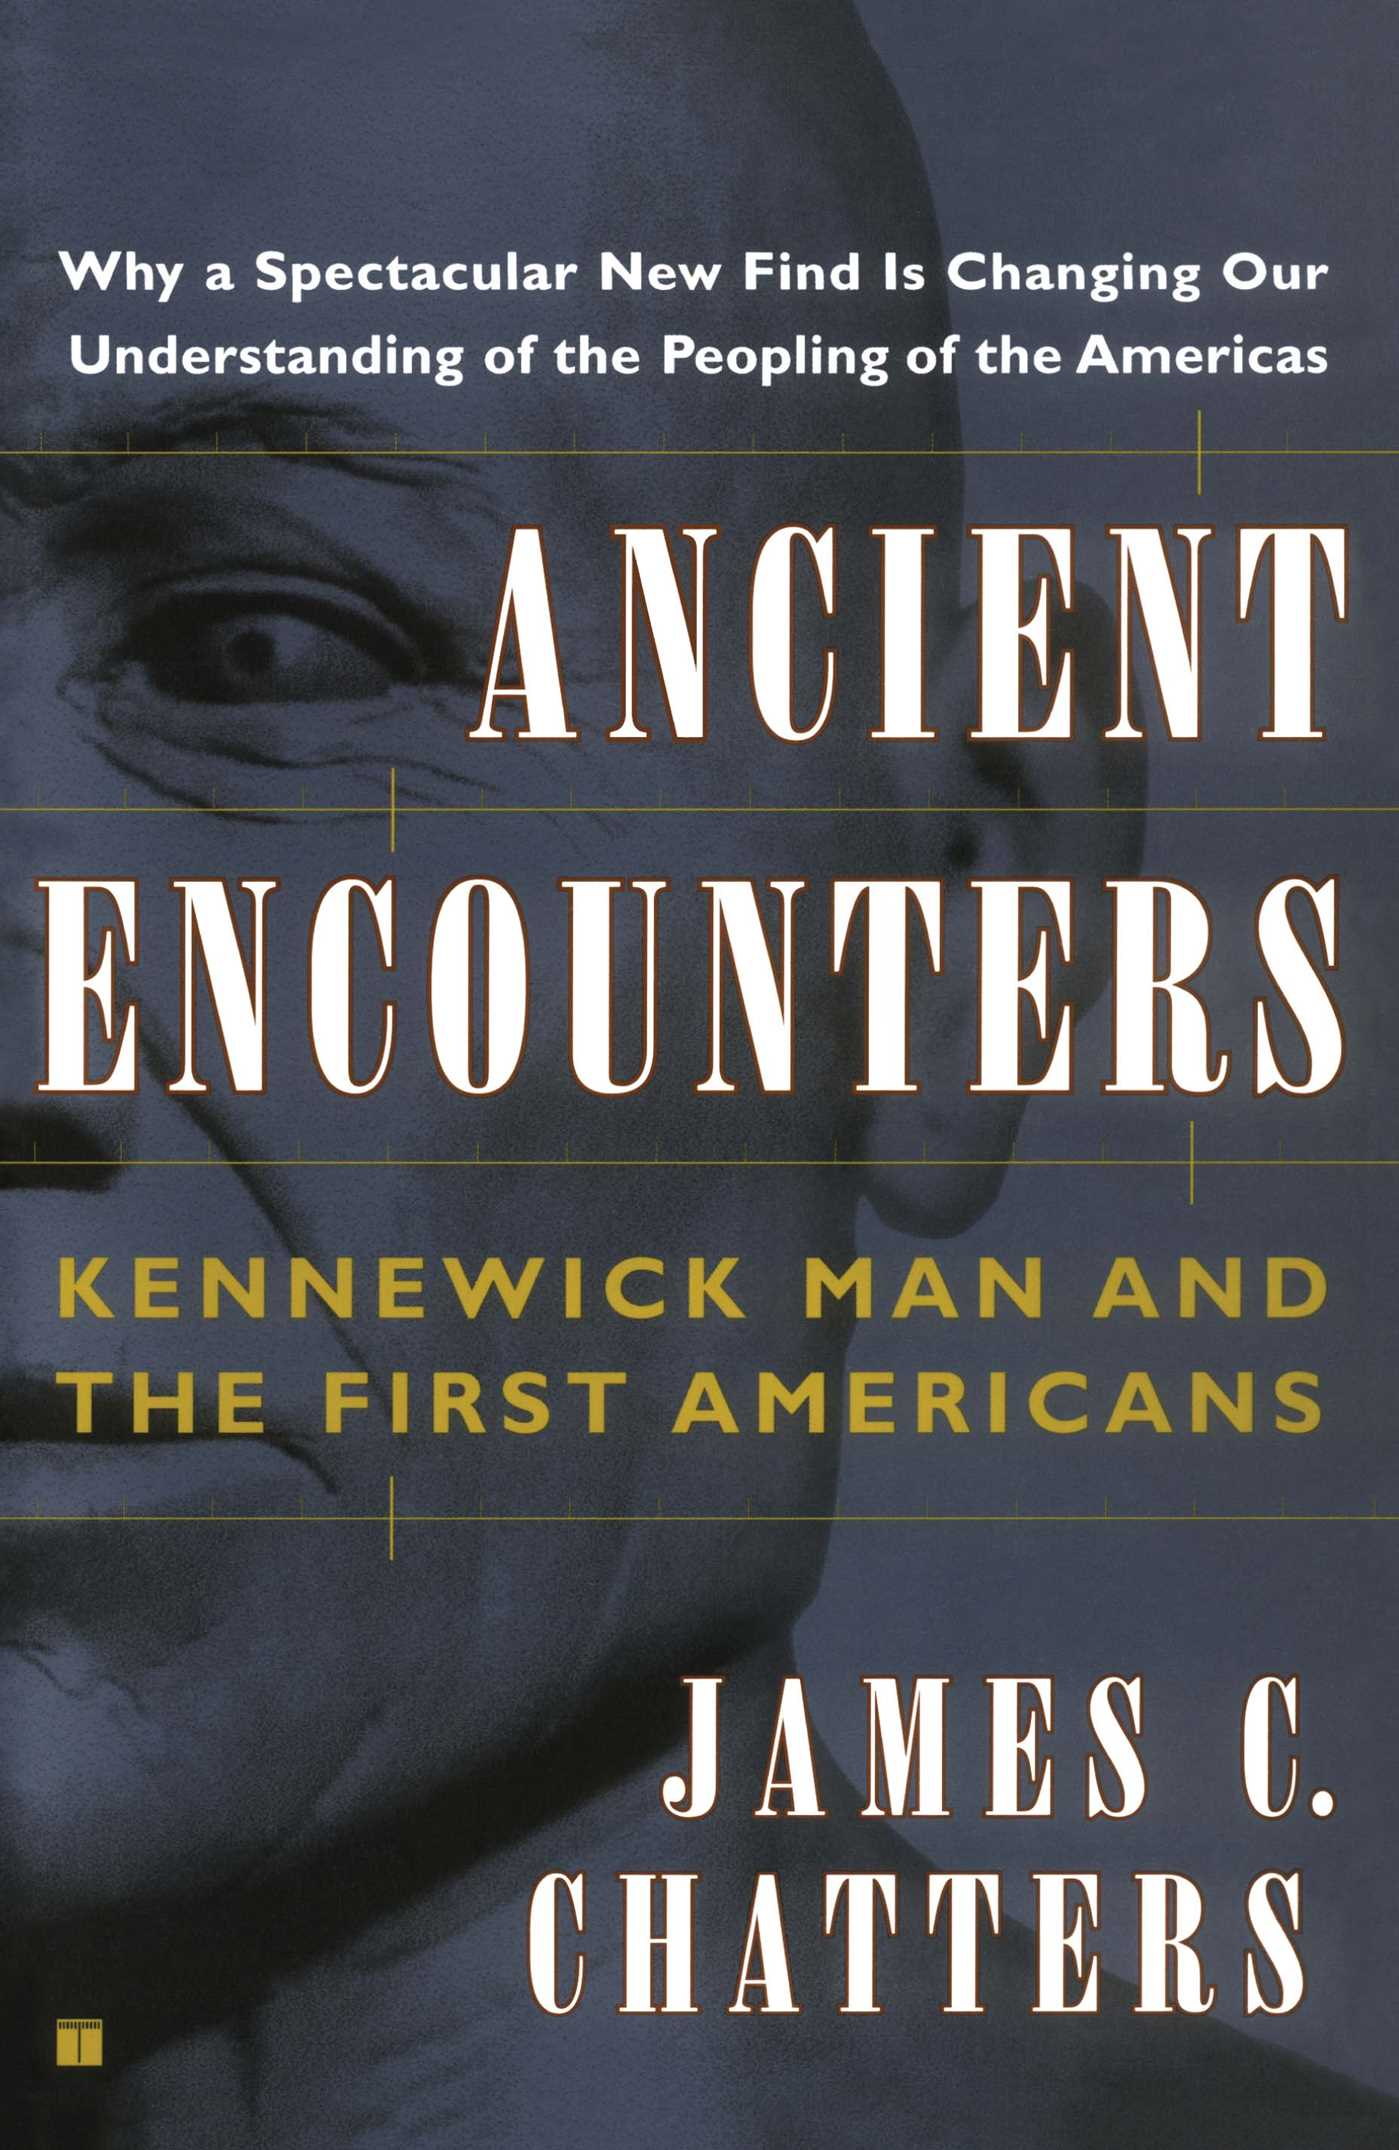 Ancient-encounters-9780684859378_hr